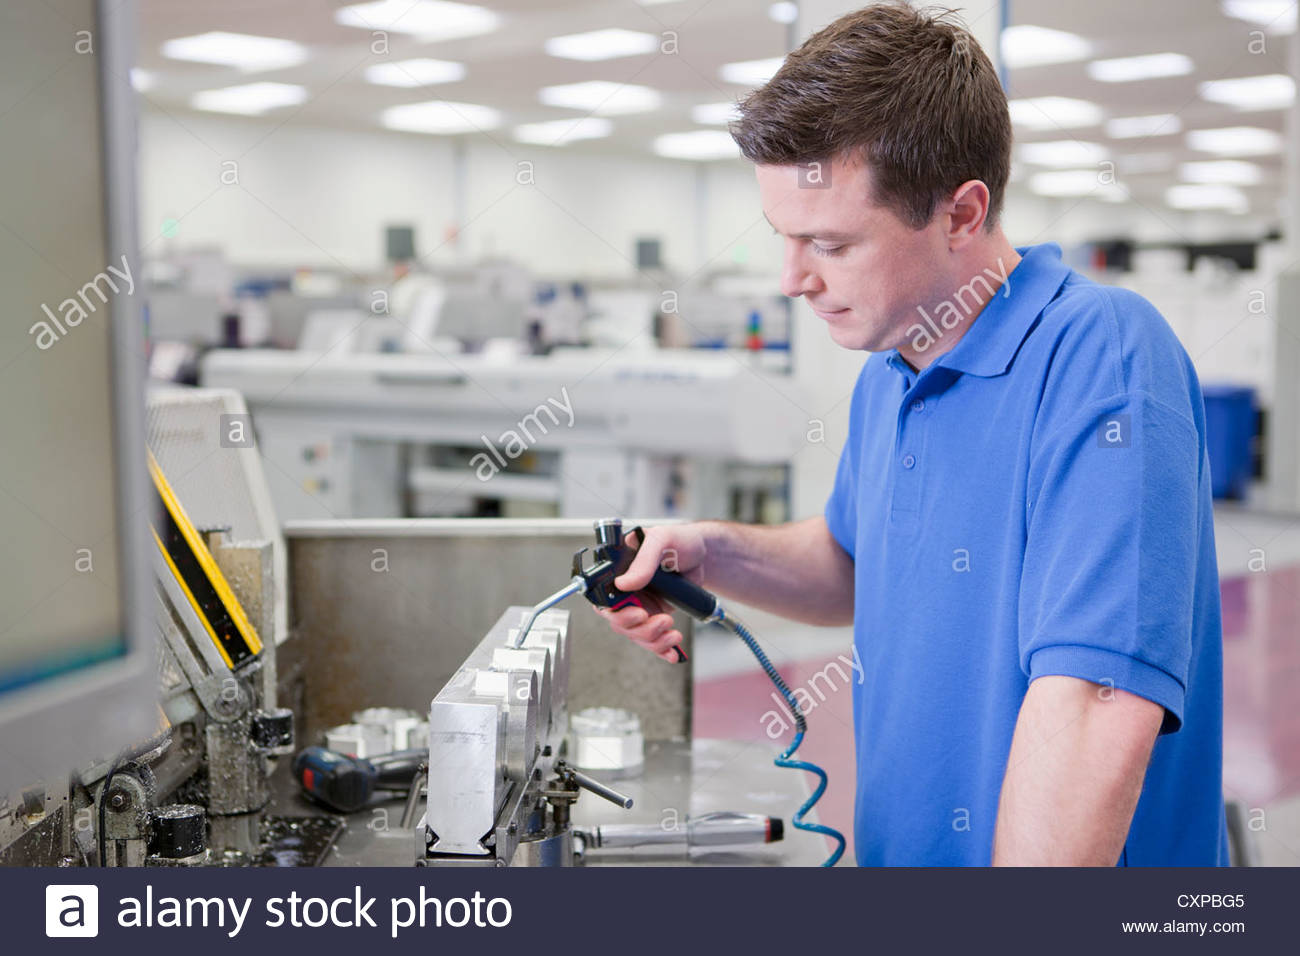 Technician working with aluminum products in hi-tech manufacturing plant - Stock Image